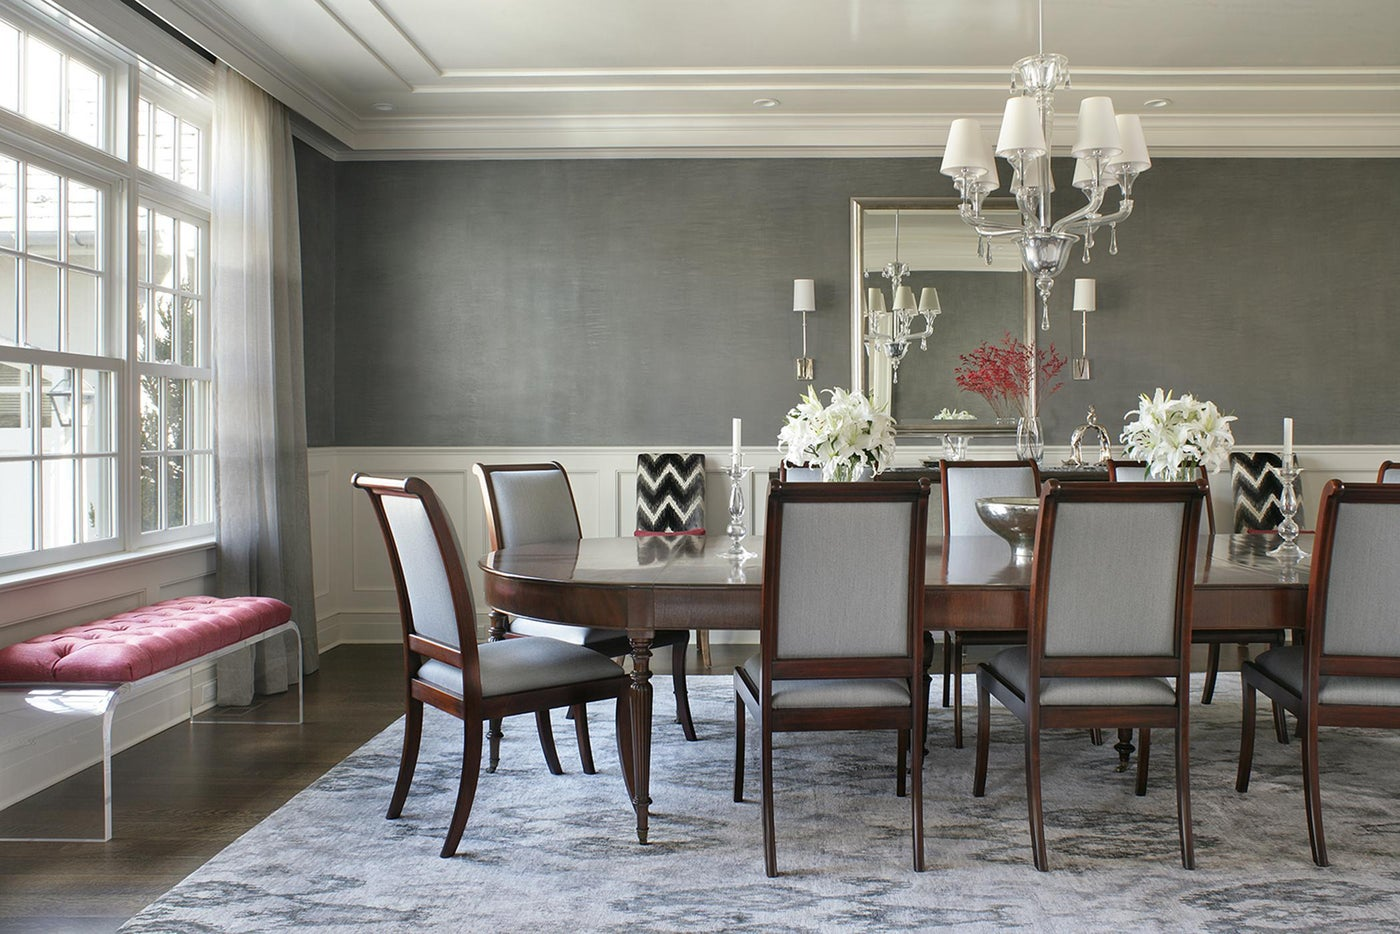 Formal Dining Room with Metallic Venetian Plaster Walls and High Gloss Ceiling